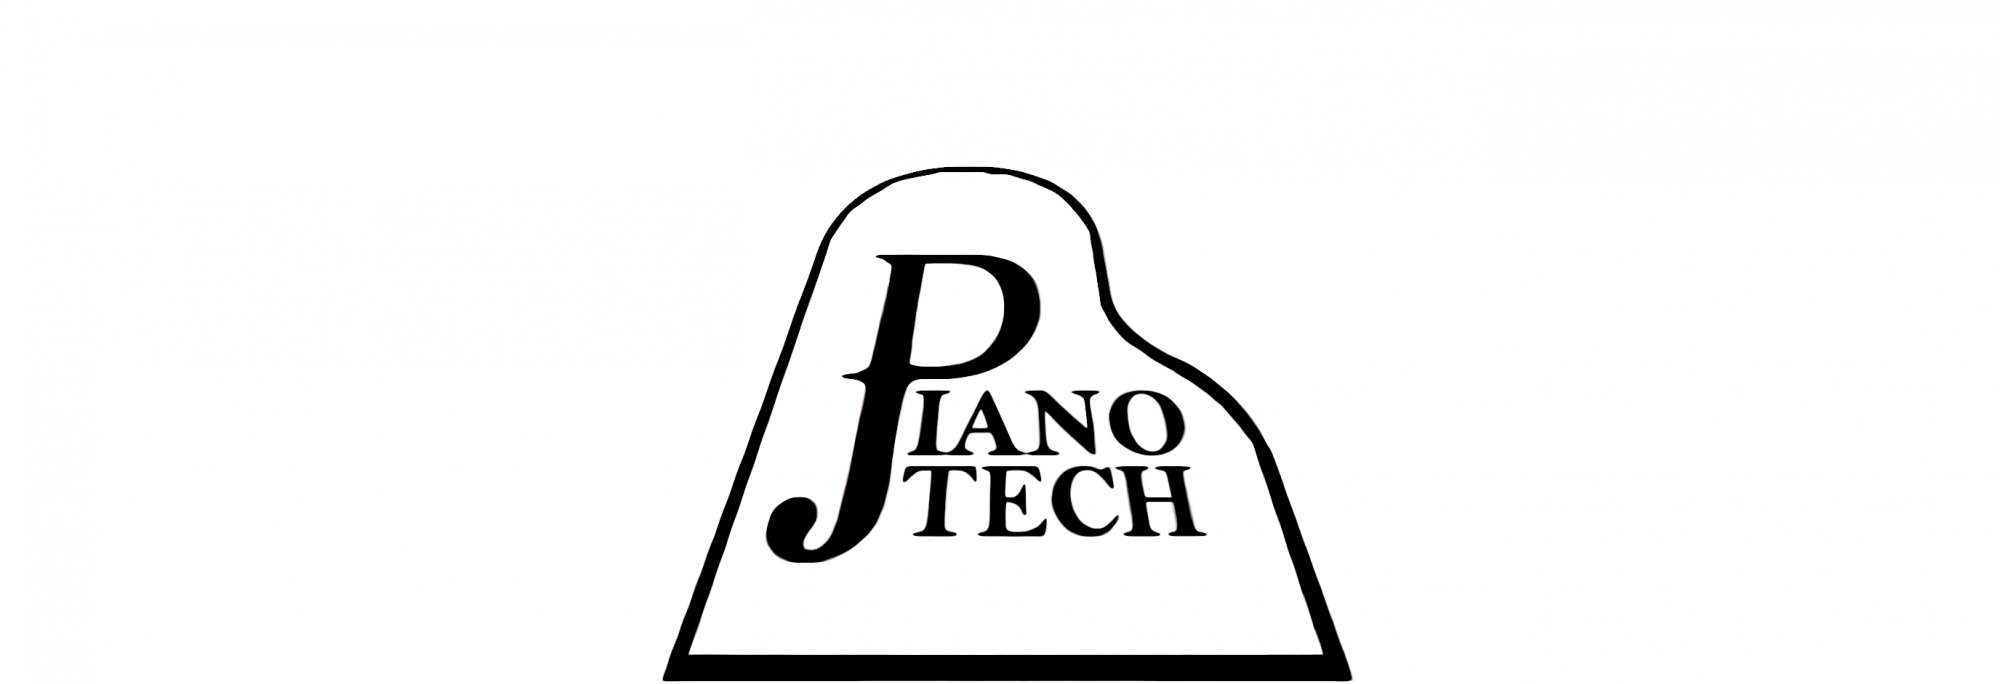 JD PIANOTECH